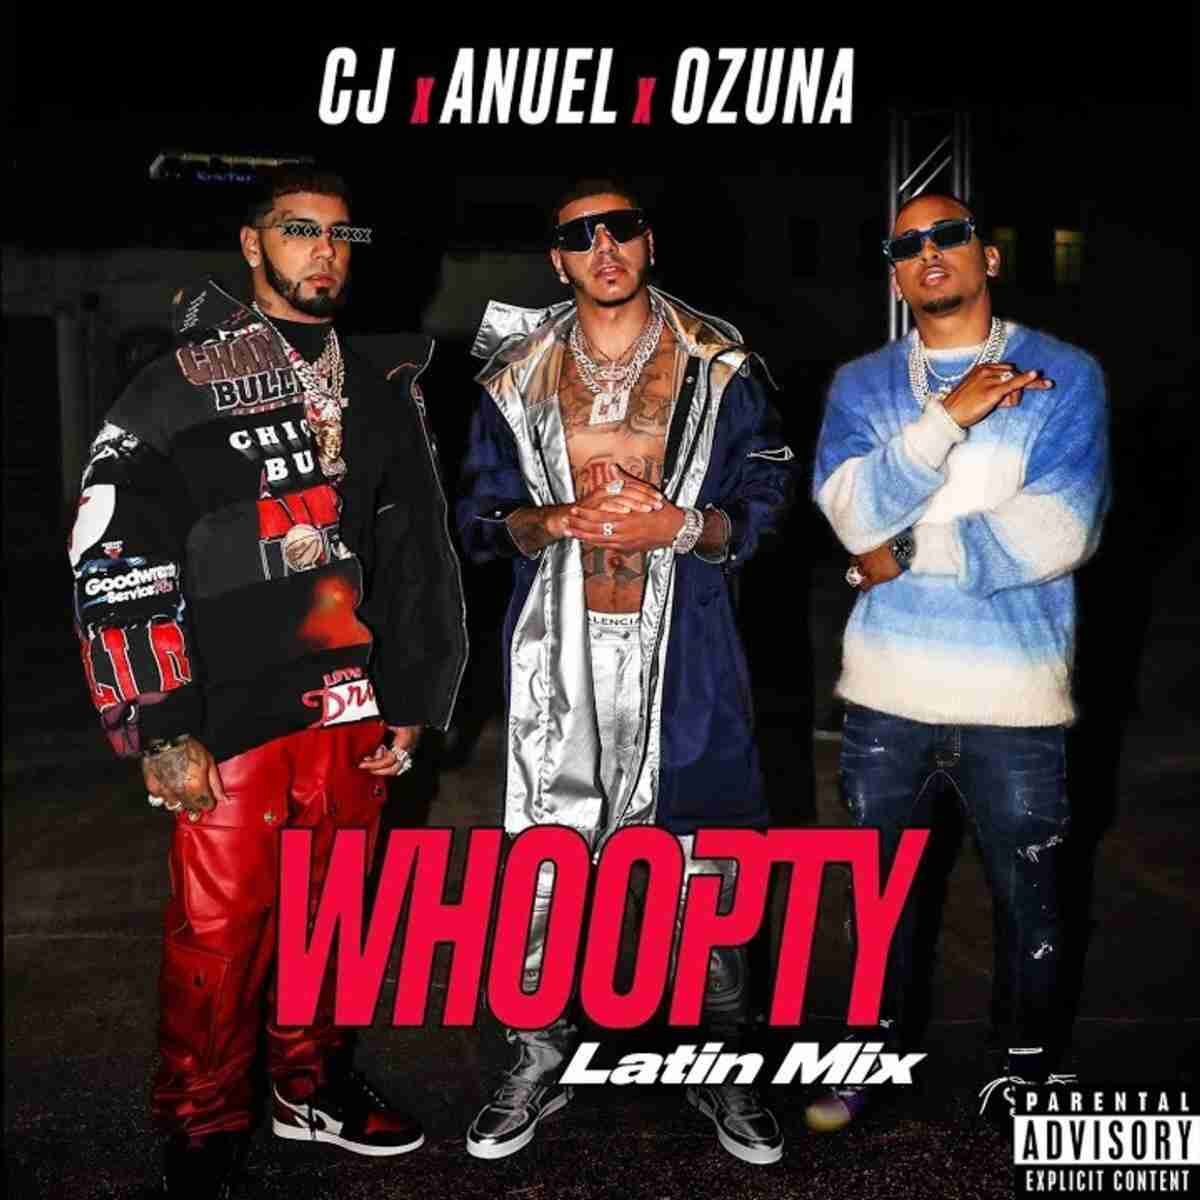 CJ - Whoopty (Latin Mix) Ft. Ozuna & Anuel AA